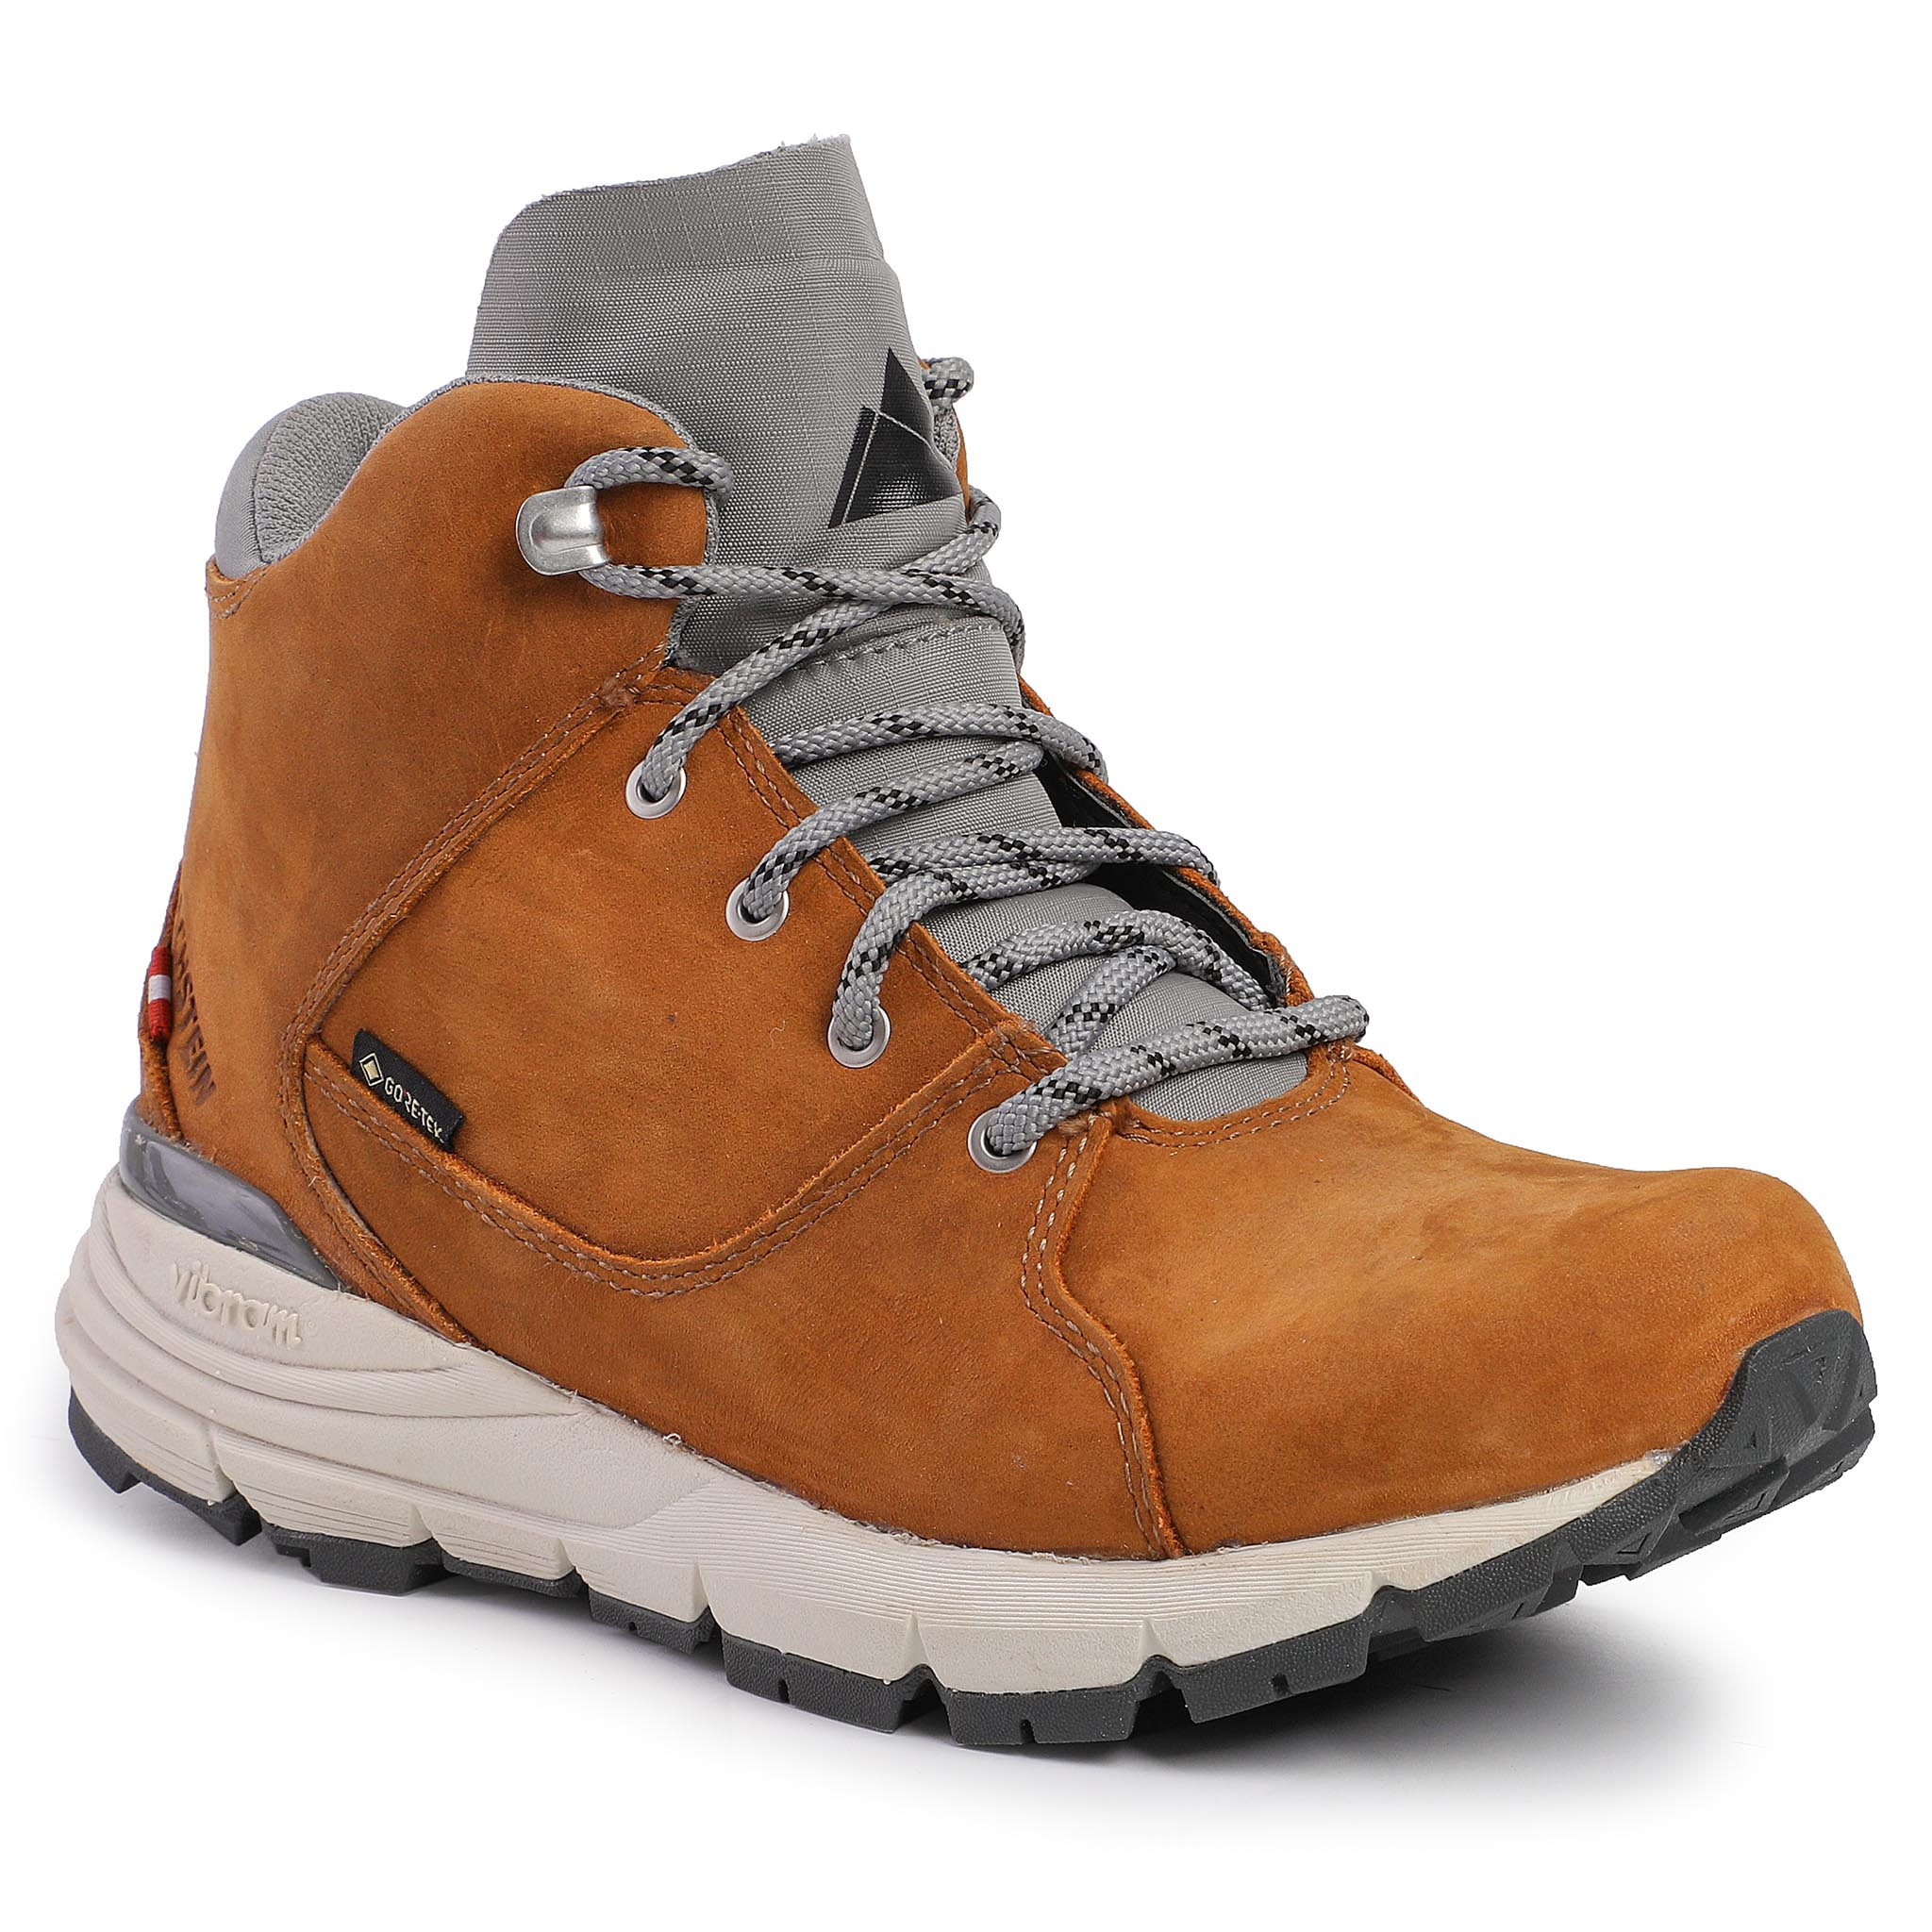 Trekkings Dachstein - Louisa Gtx Gore-Tex 311951-2000/5145 Brandy/Stone Grey imagine epantofi.ro 2021